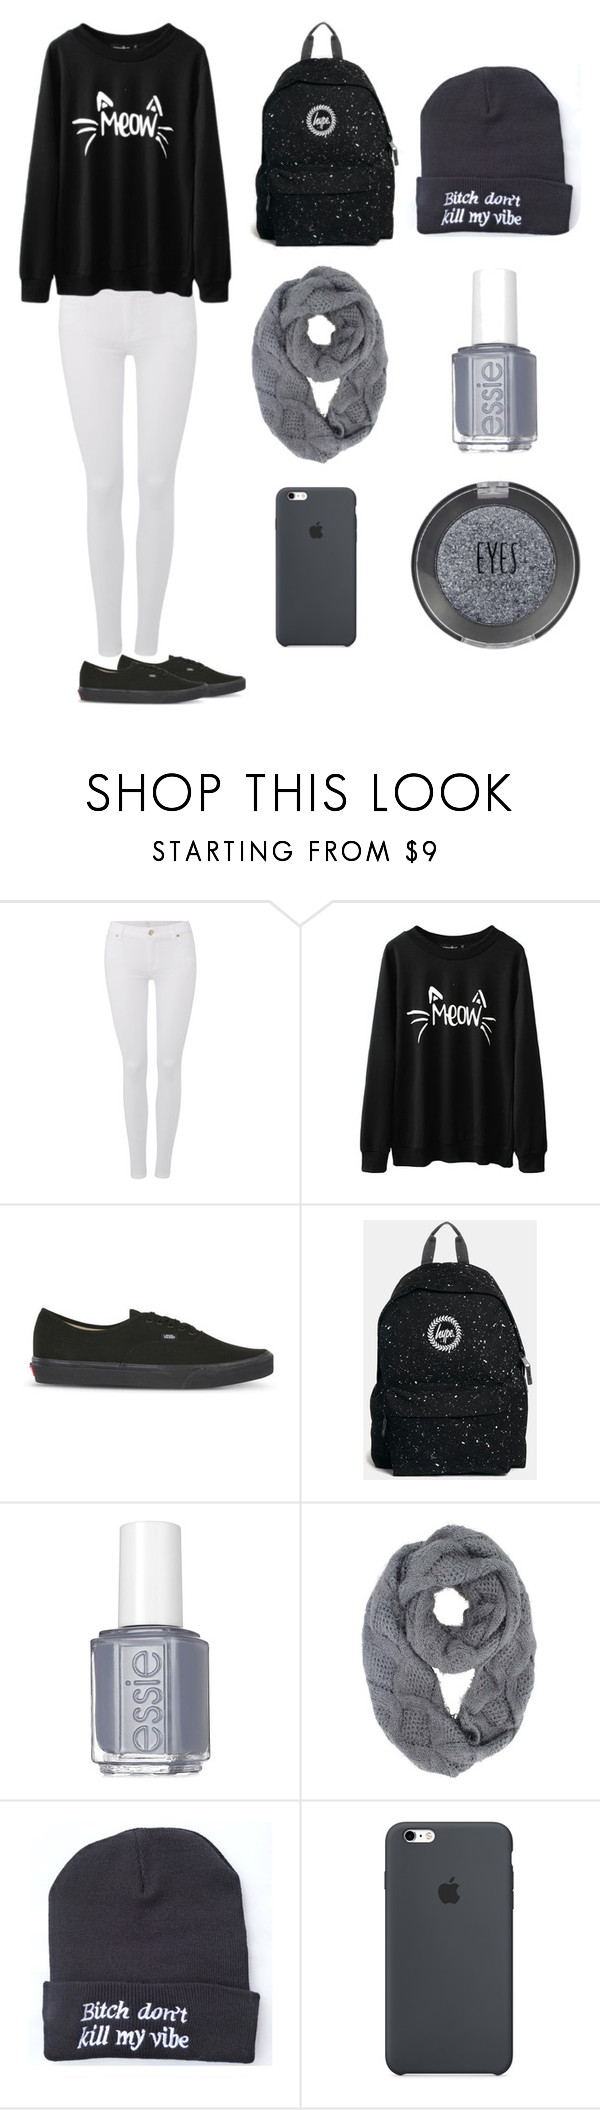 """Lazy days"" by apparentlynotyou on Polyvore featuring 7 For All Mankind, Vans, Hype, Essie and Topshop"